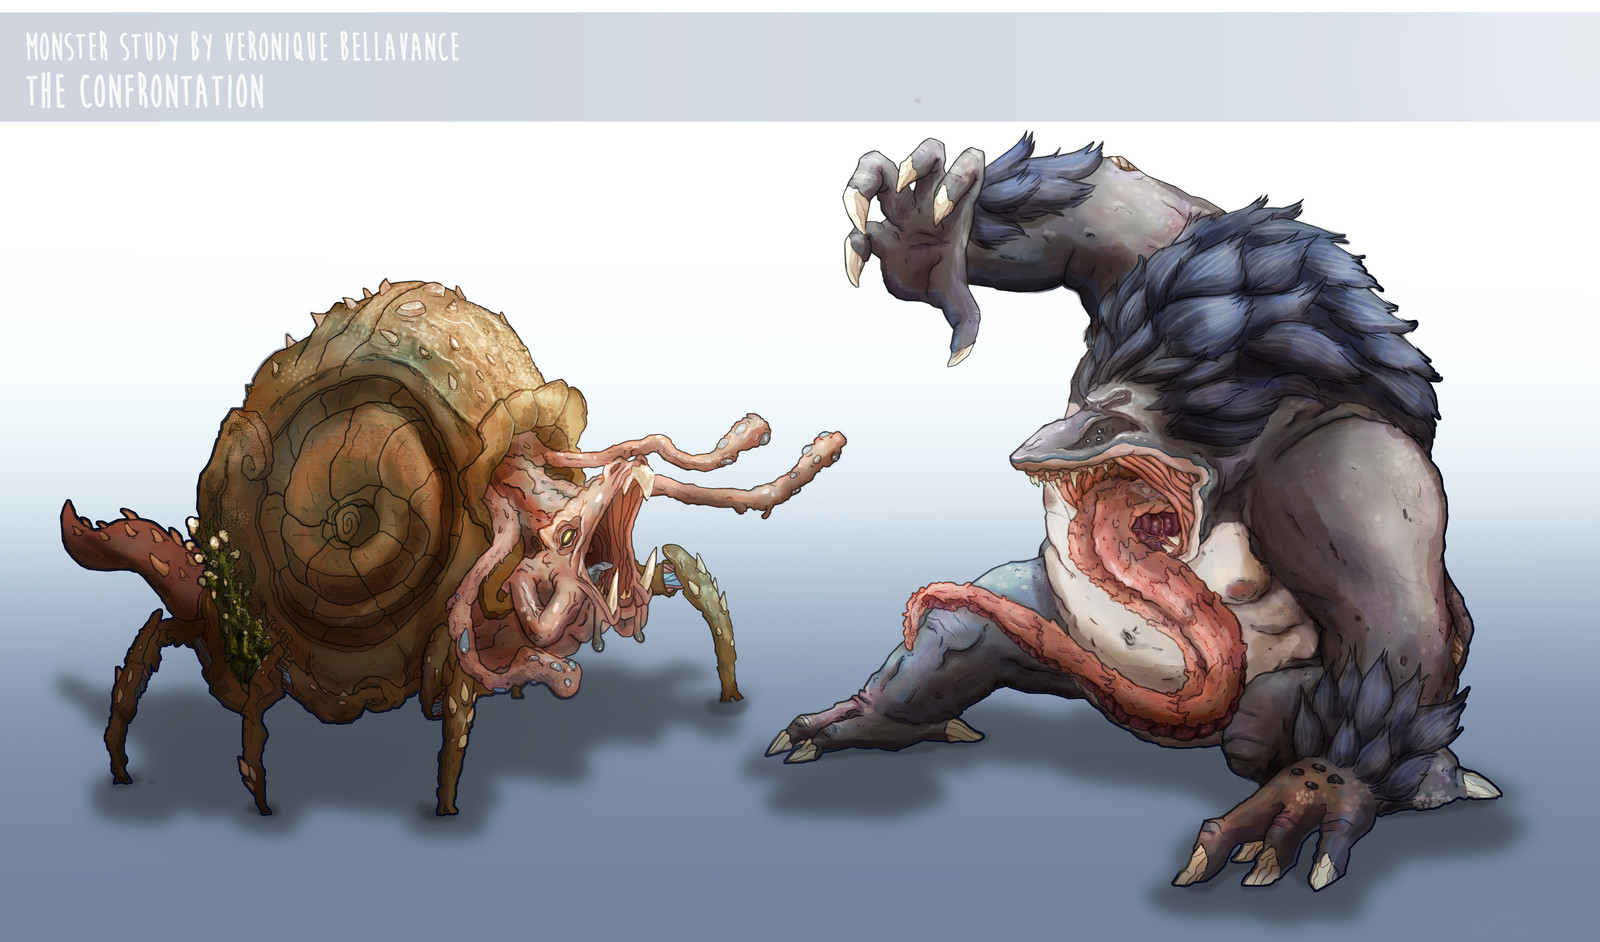 Final Concept of the two monster.